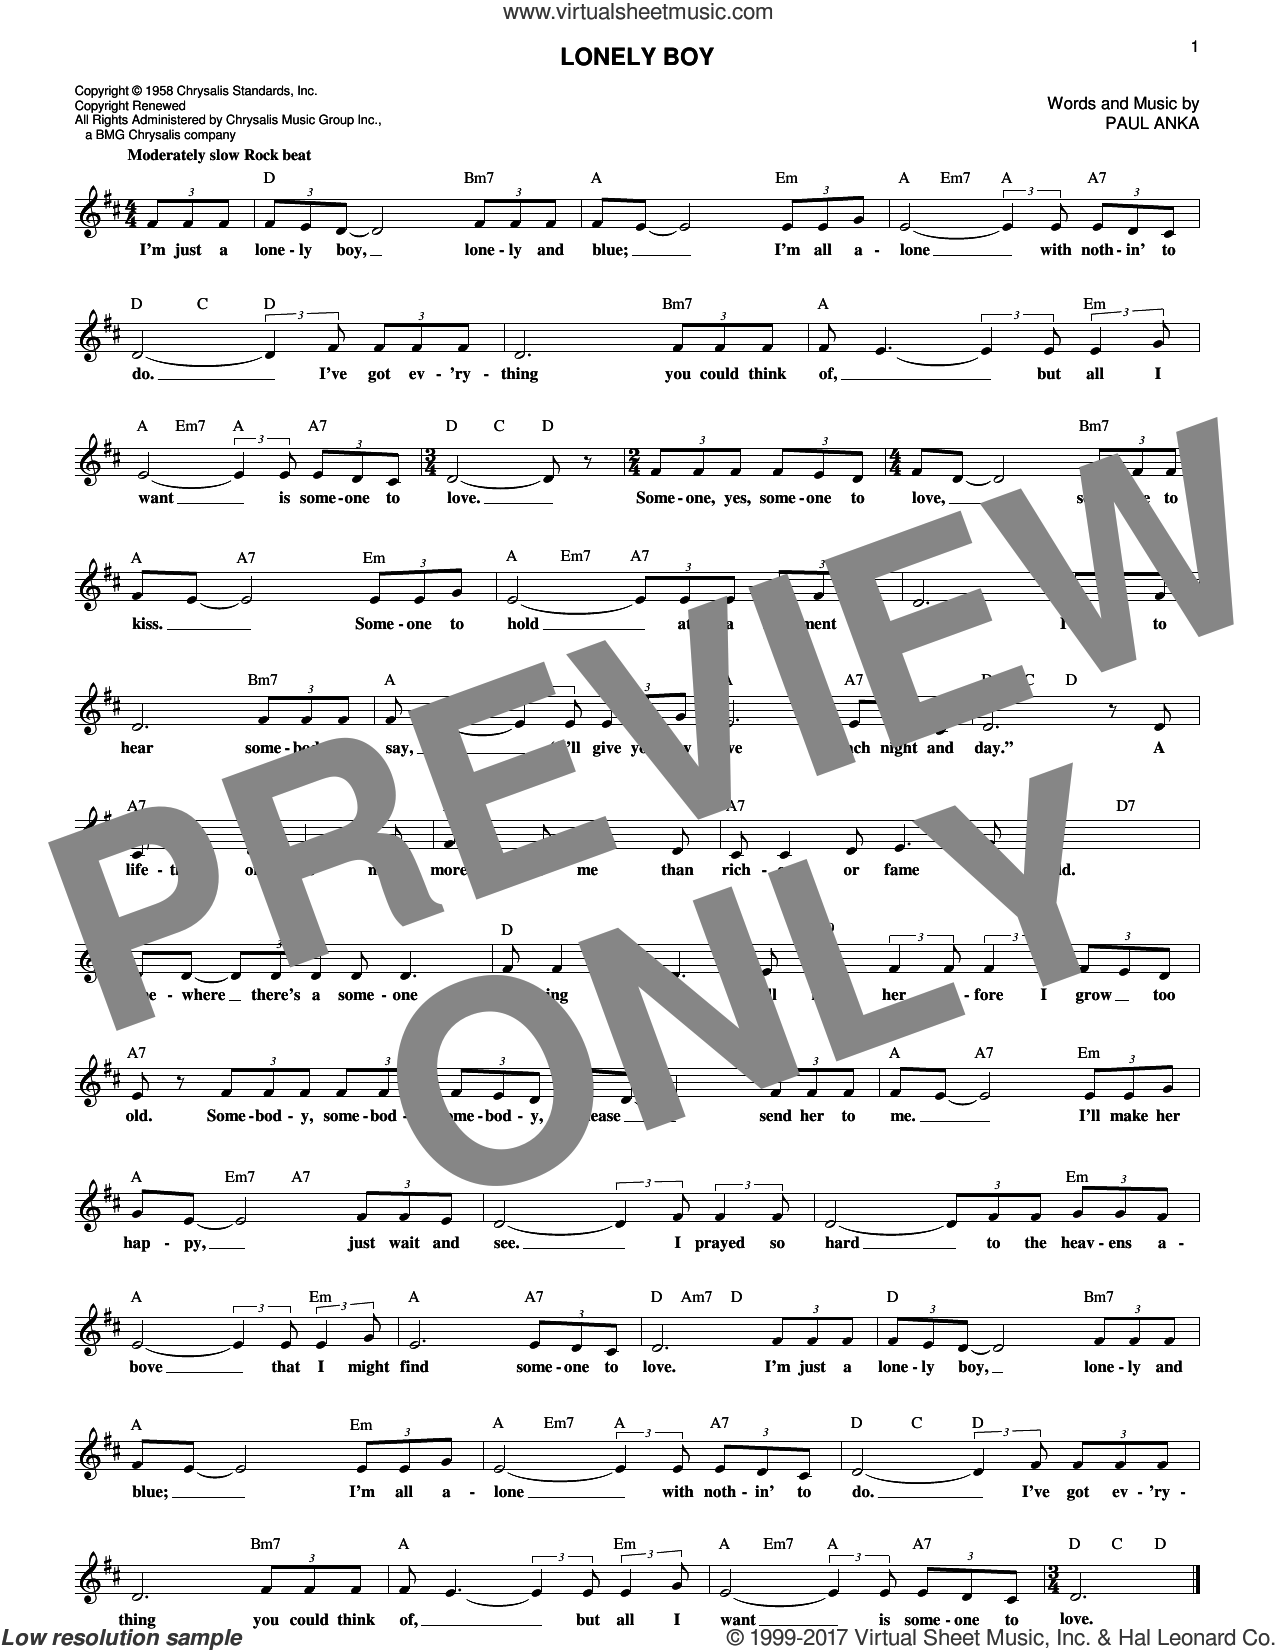 Lonely Boy sheet music for voice and other instruments (fake book) by Paul Anka, intermediate skill level